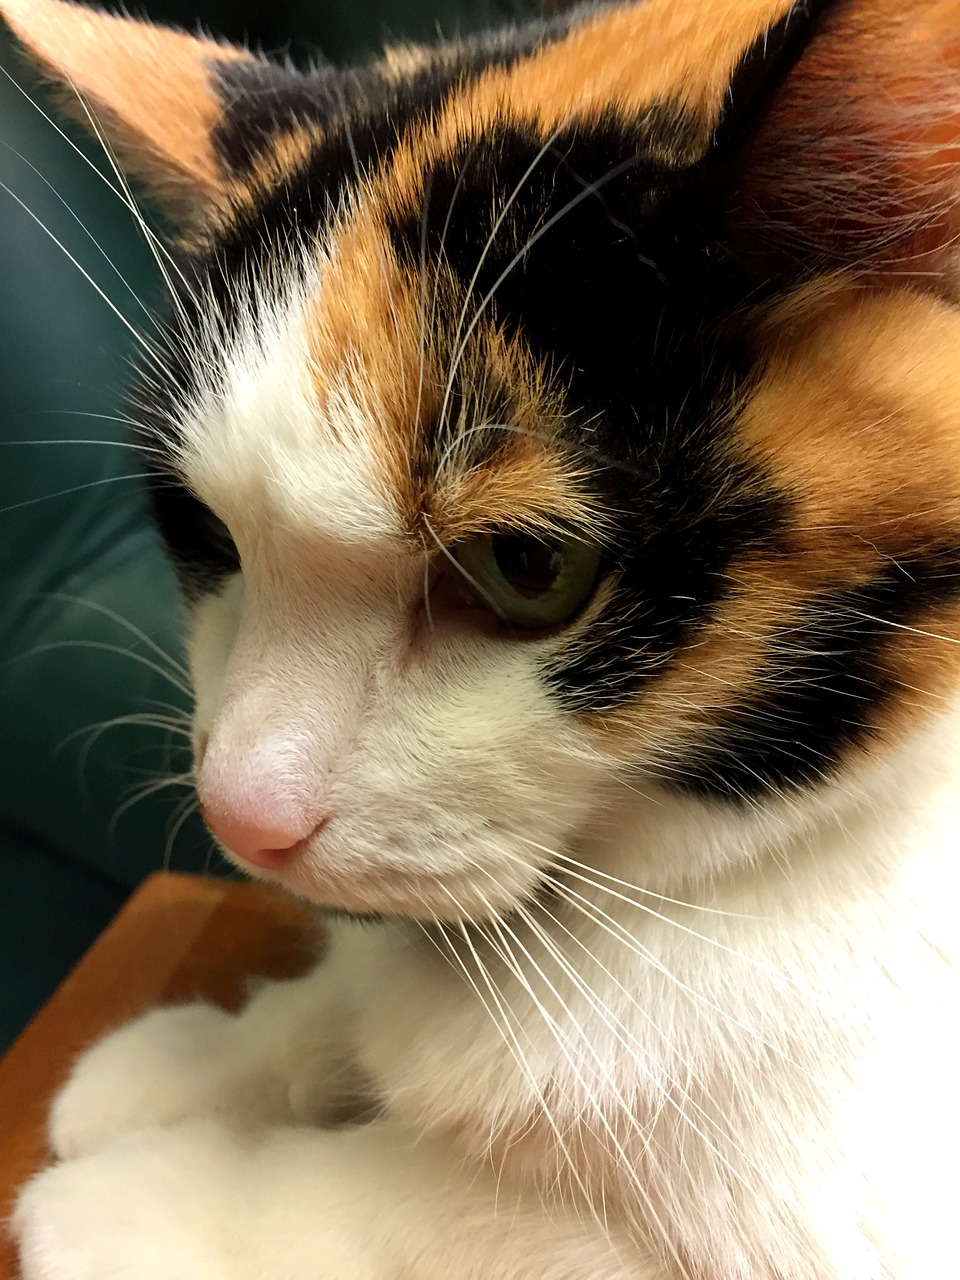 calico,cat,feline,kitten,kitty,profile,orange,black,white,green,eyes,whiskers,looking,female,stare,expression,paws,pink,nose,pensive,face,furry,close,head,pet,friend,love,cuddly,curious,tricolor,fur,free pictures, free photos, free images, royalty free, free illustrations, public domain